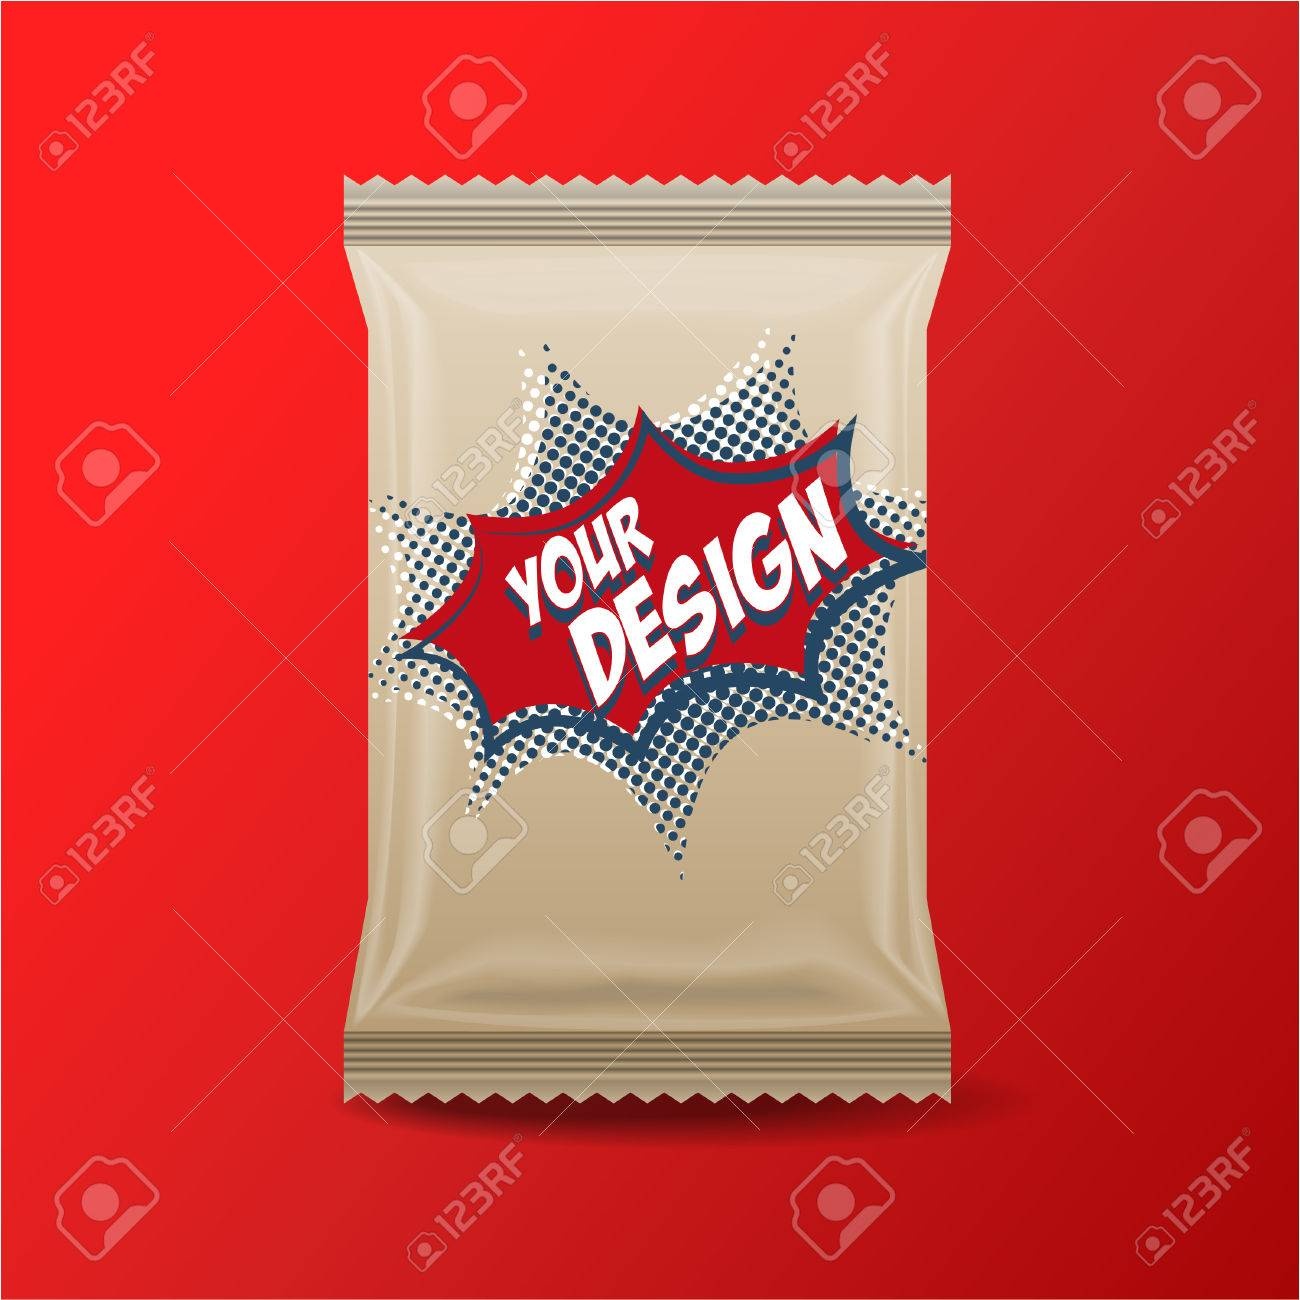 Foil Food Snack brown pack For biscuit, wafer, crackers, sweets, chocolate bar, candy bar, snacks etc. Plastic Pack Template for your design and branding. - 53167562